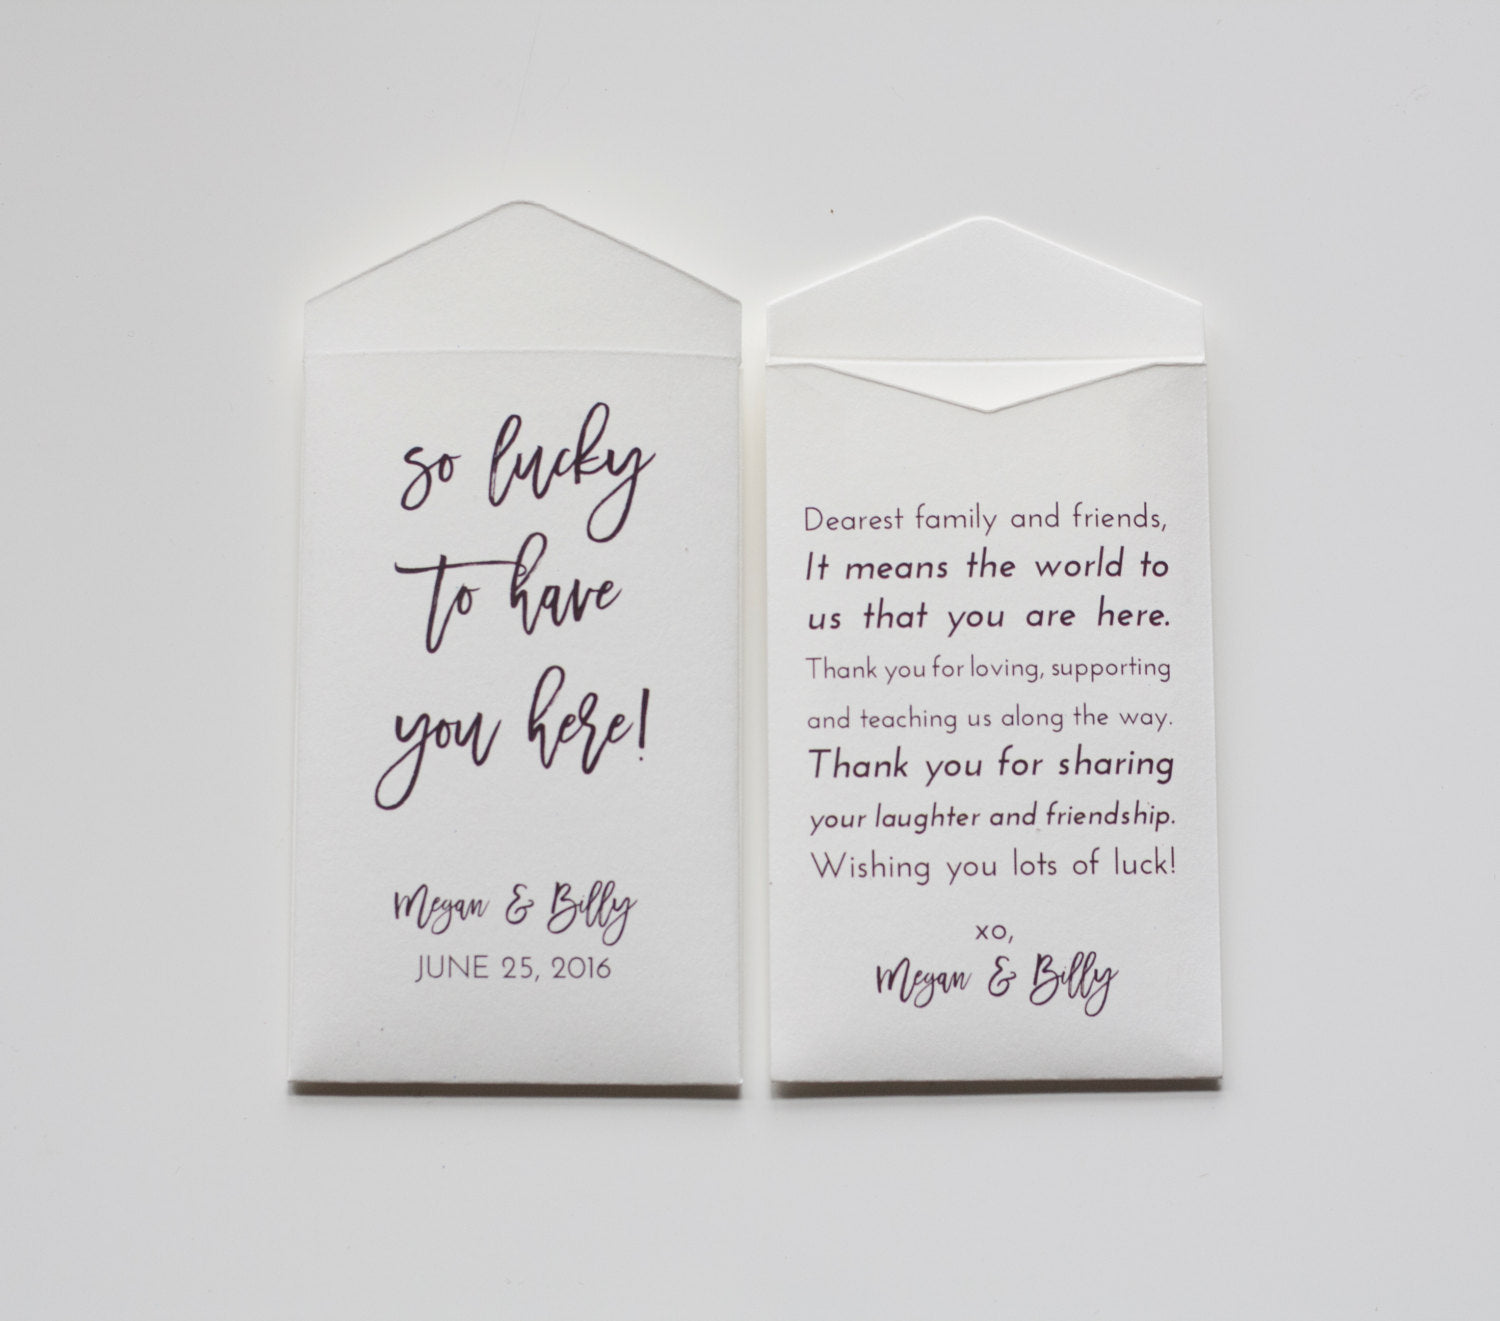 Custom White Lottery Ticket Wedding Favor Packet Envelopes - Vegas Wedding Favor - Fun Wedding Favor - Unique Favor - Many Colors Available